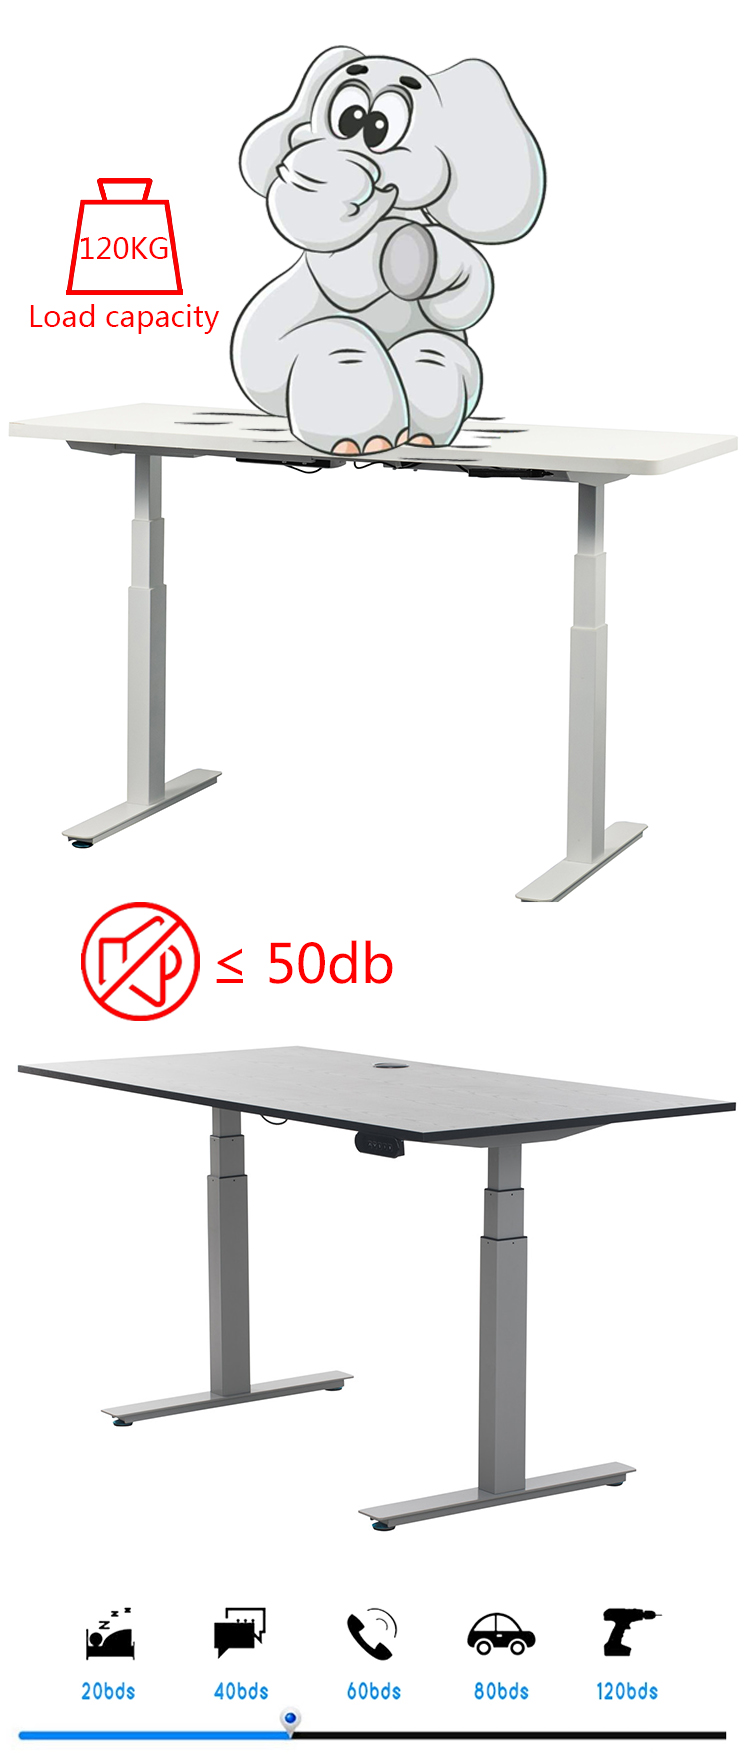 HDR-UD1 modern office furniture adjustable desk double motor office desk table